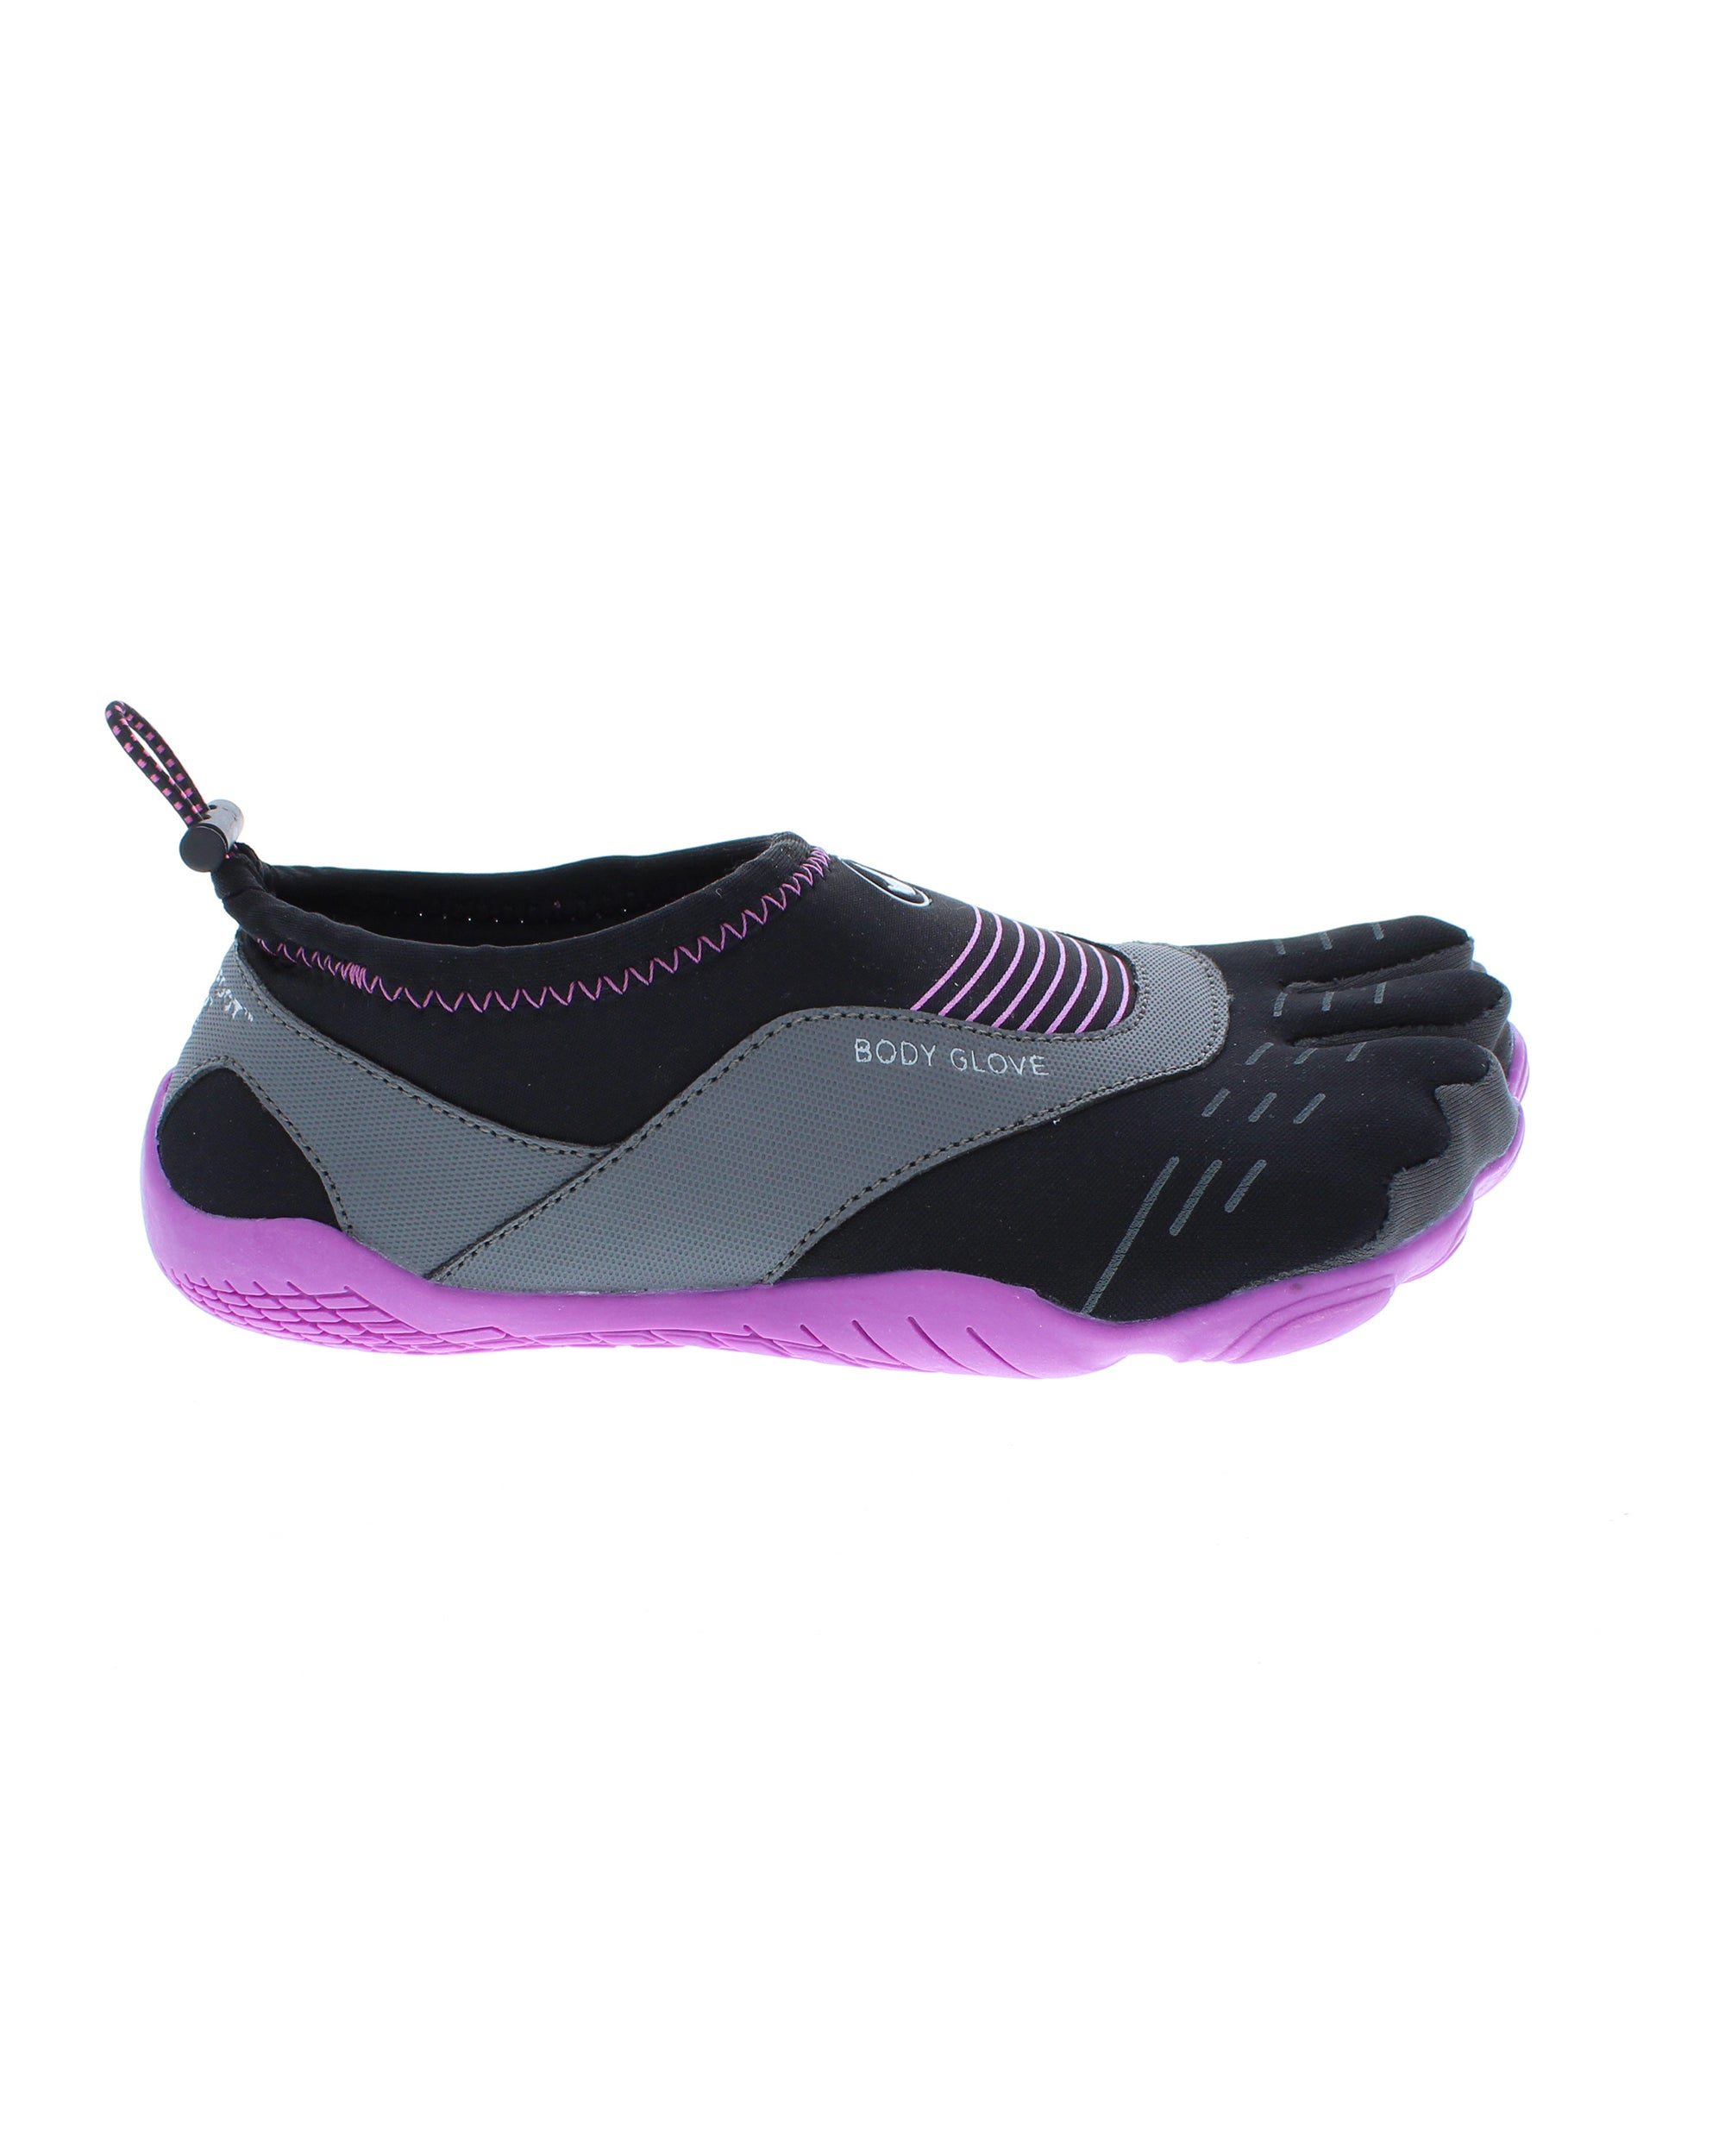 Women's 3T Barefoot Cinch Water Shoes - Black/Oasis Purple